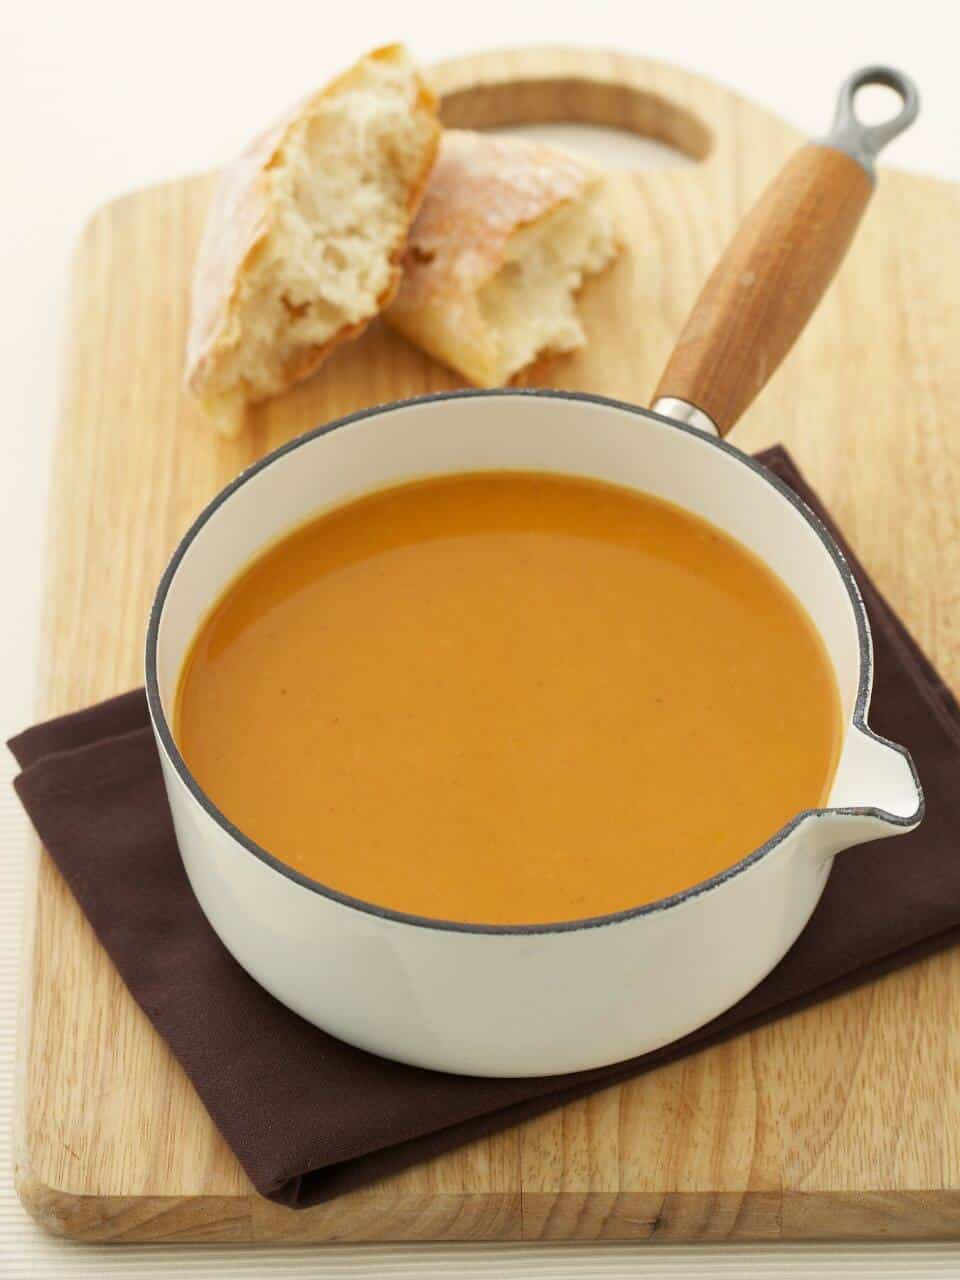 ROASTED SWEET POTATO, GINGER AND CINNAMON SOUP